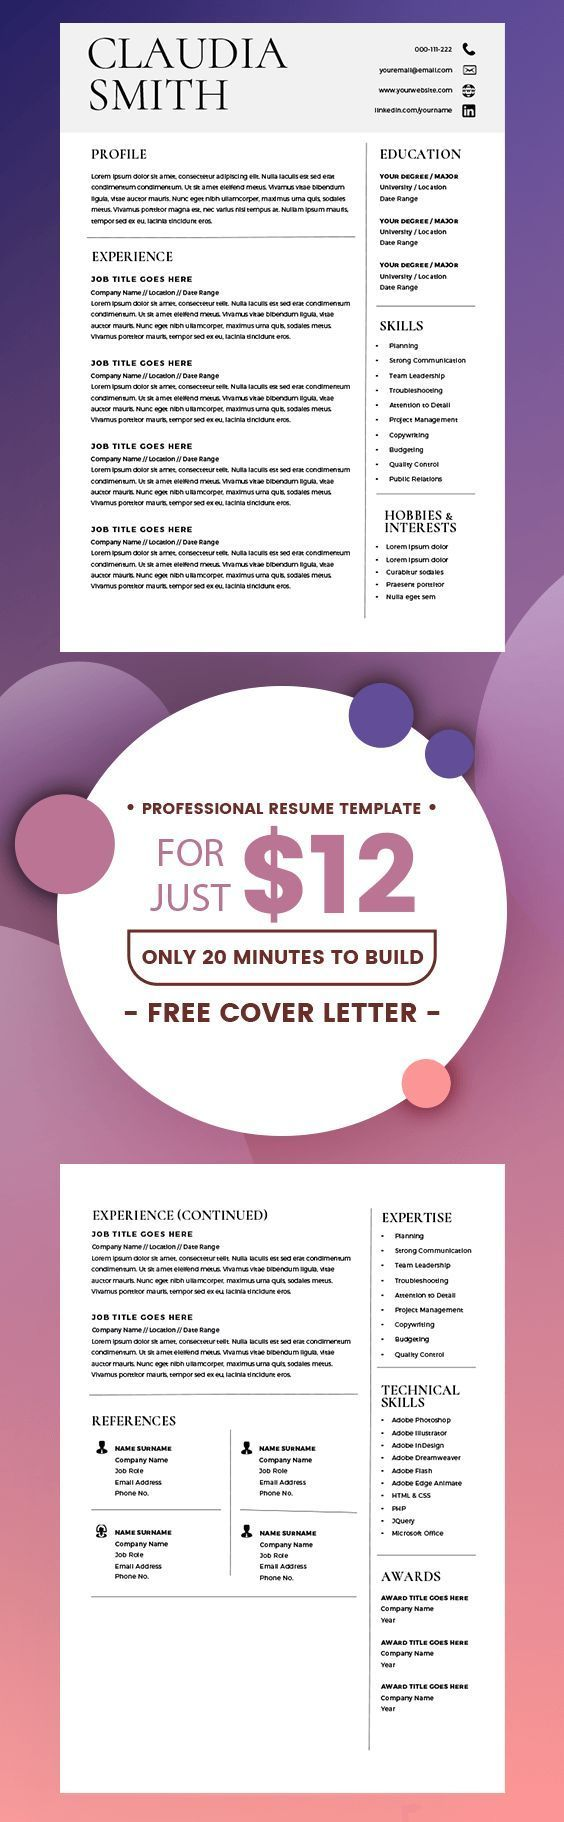 Medical Resume Template Word, Minimalist Resume with Cover Letter ...